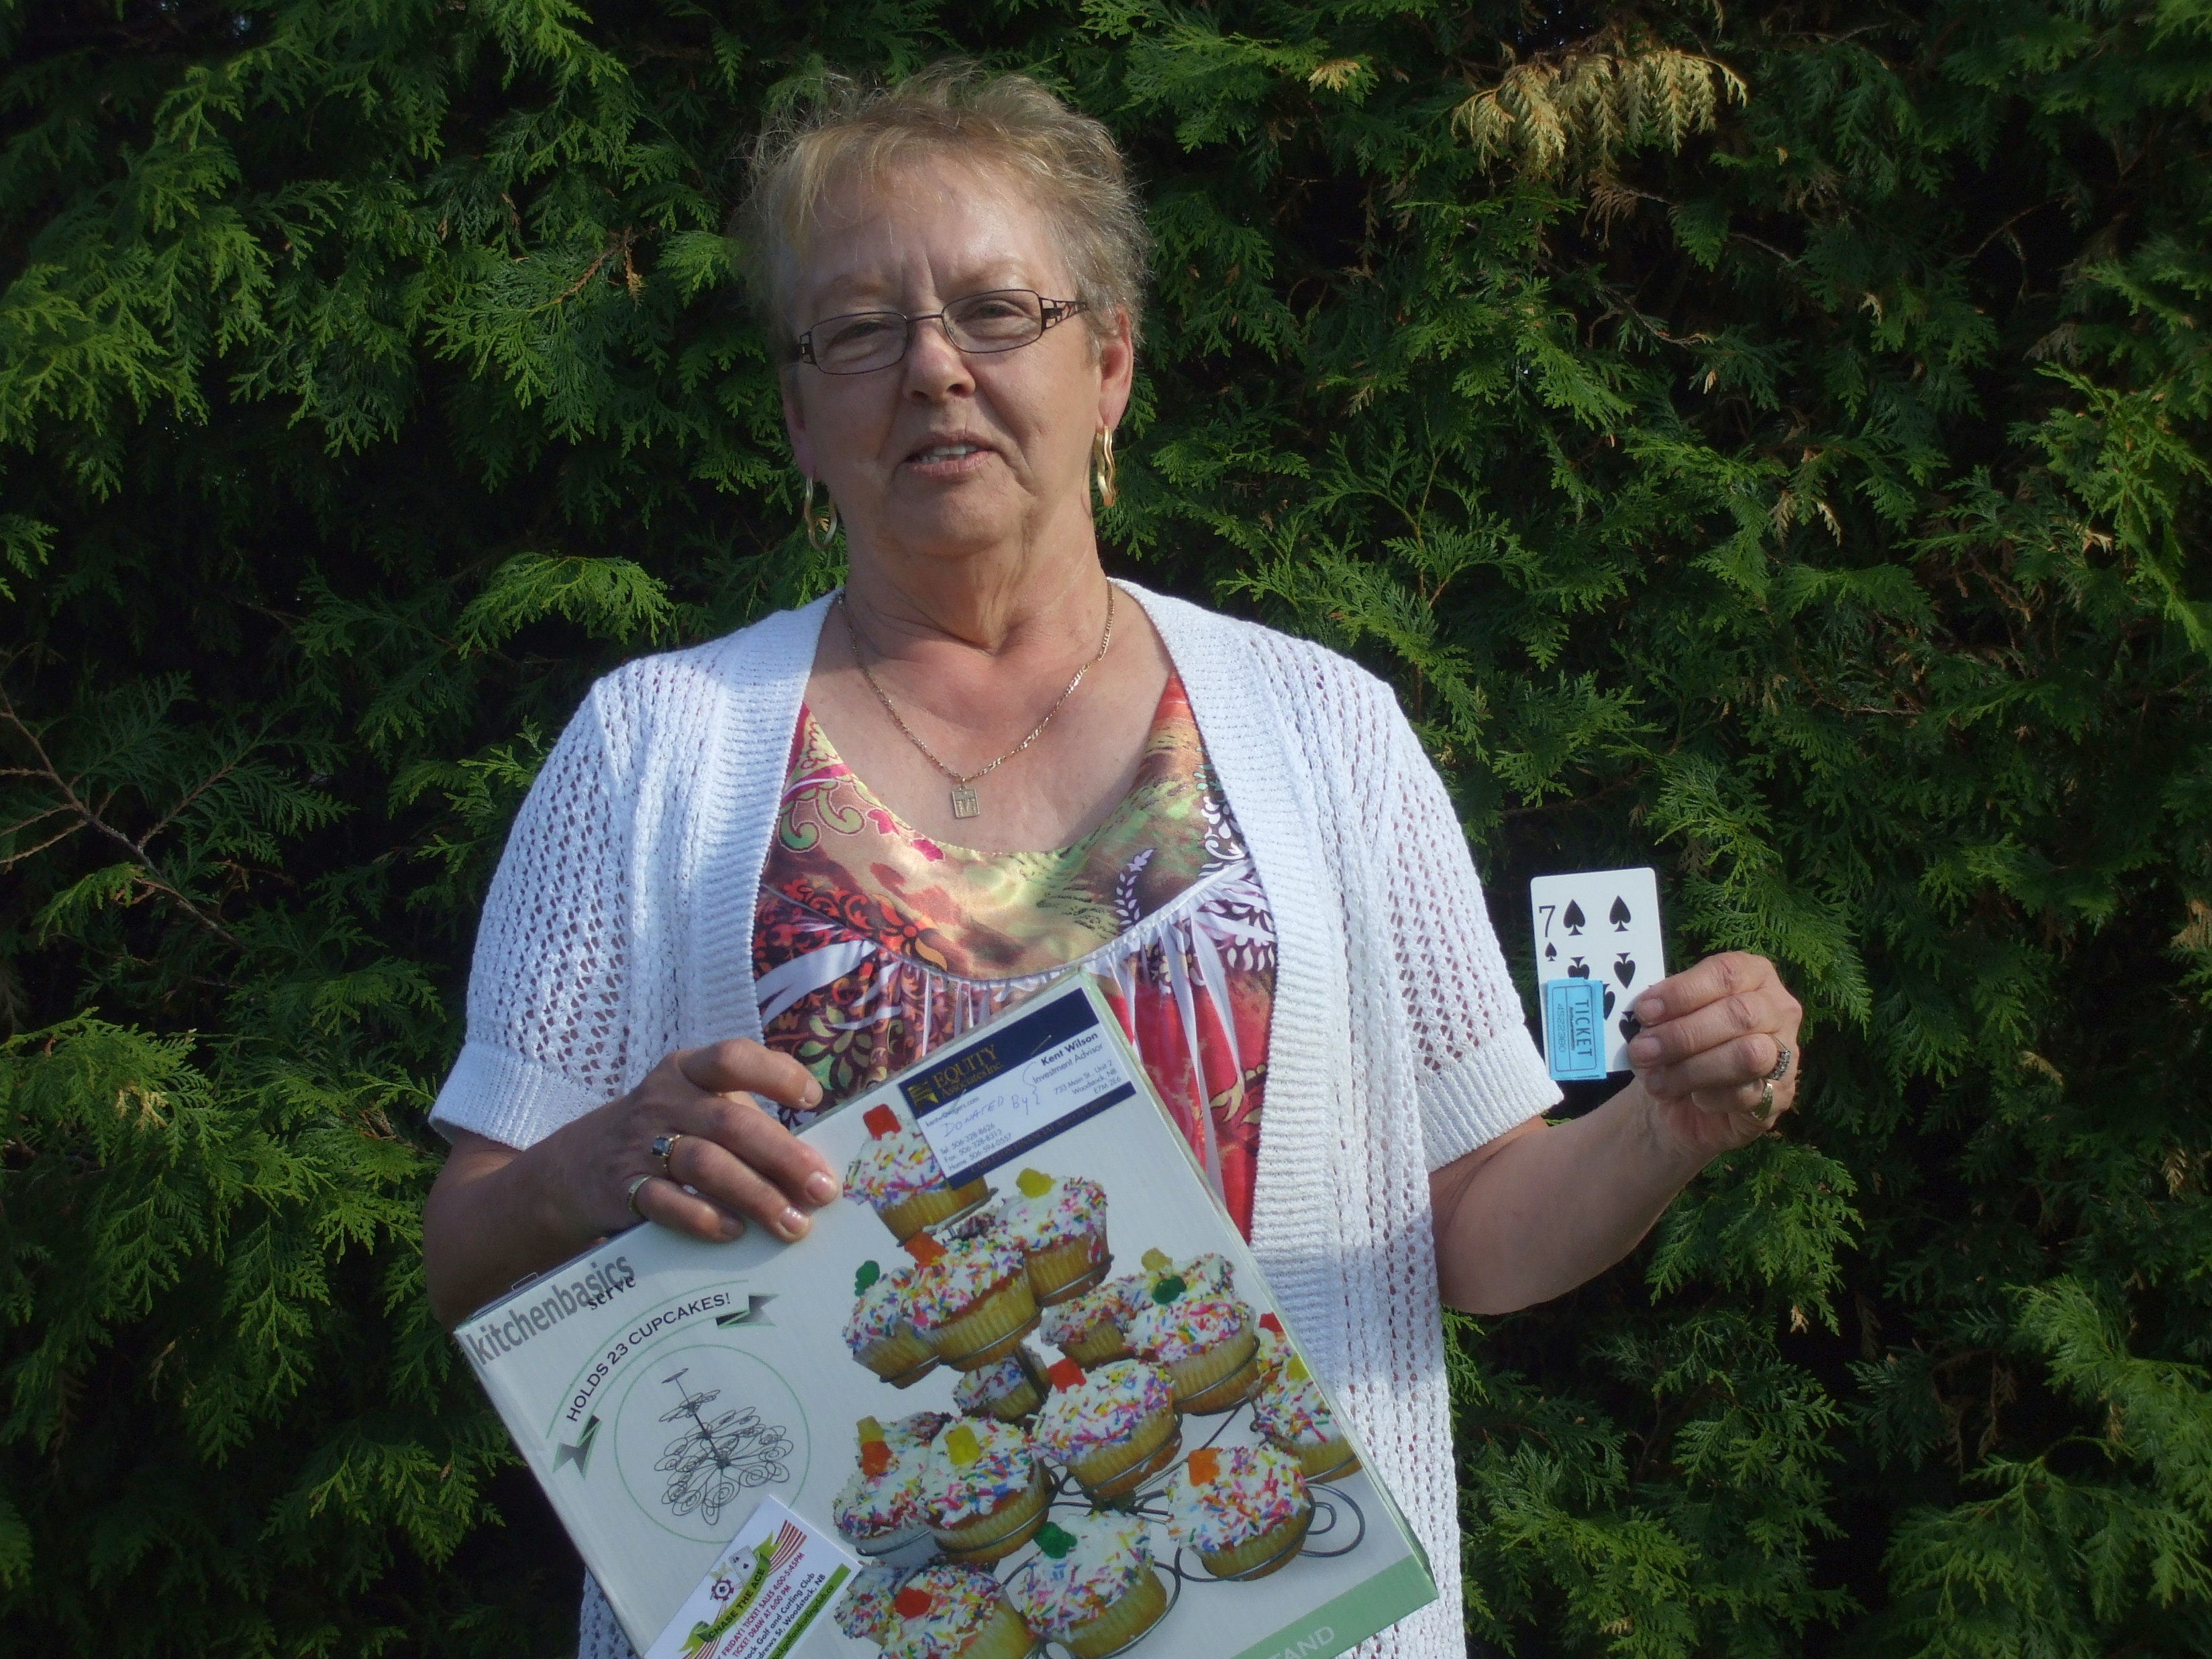 Week 4 Winner - Pauline Pelkey